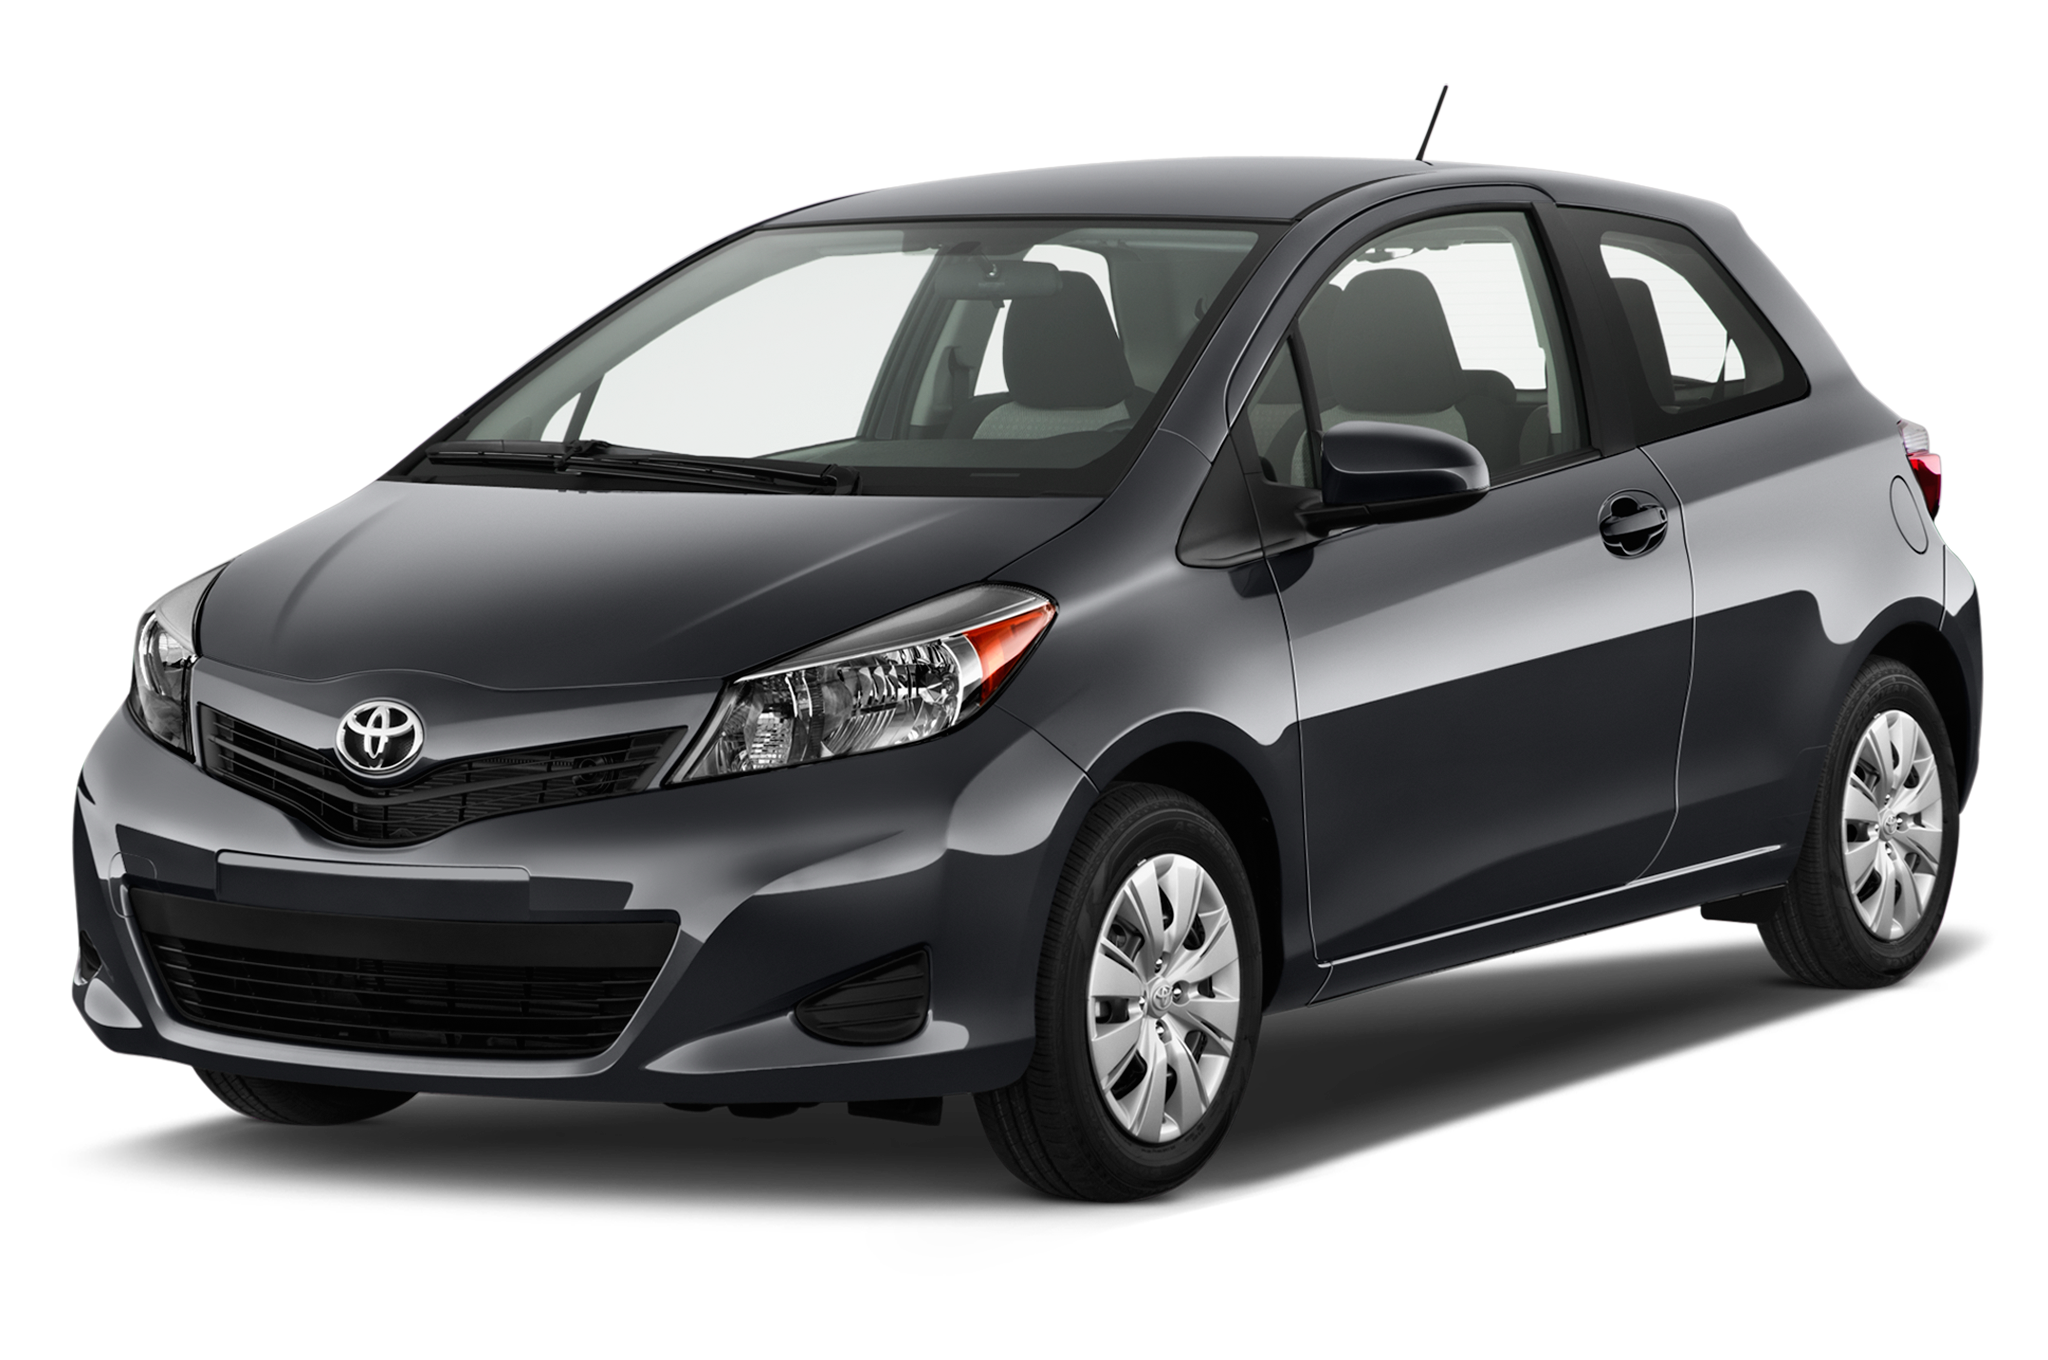 2013 toyota yaris gets minor price increase to 15 130. Black Bedroom Furniture Sets. Home Design Ideas